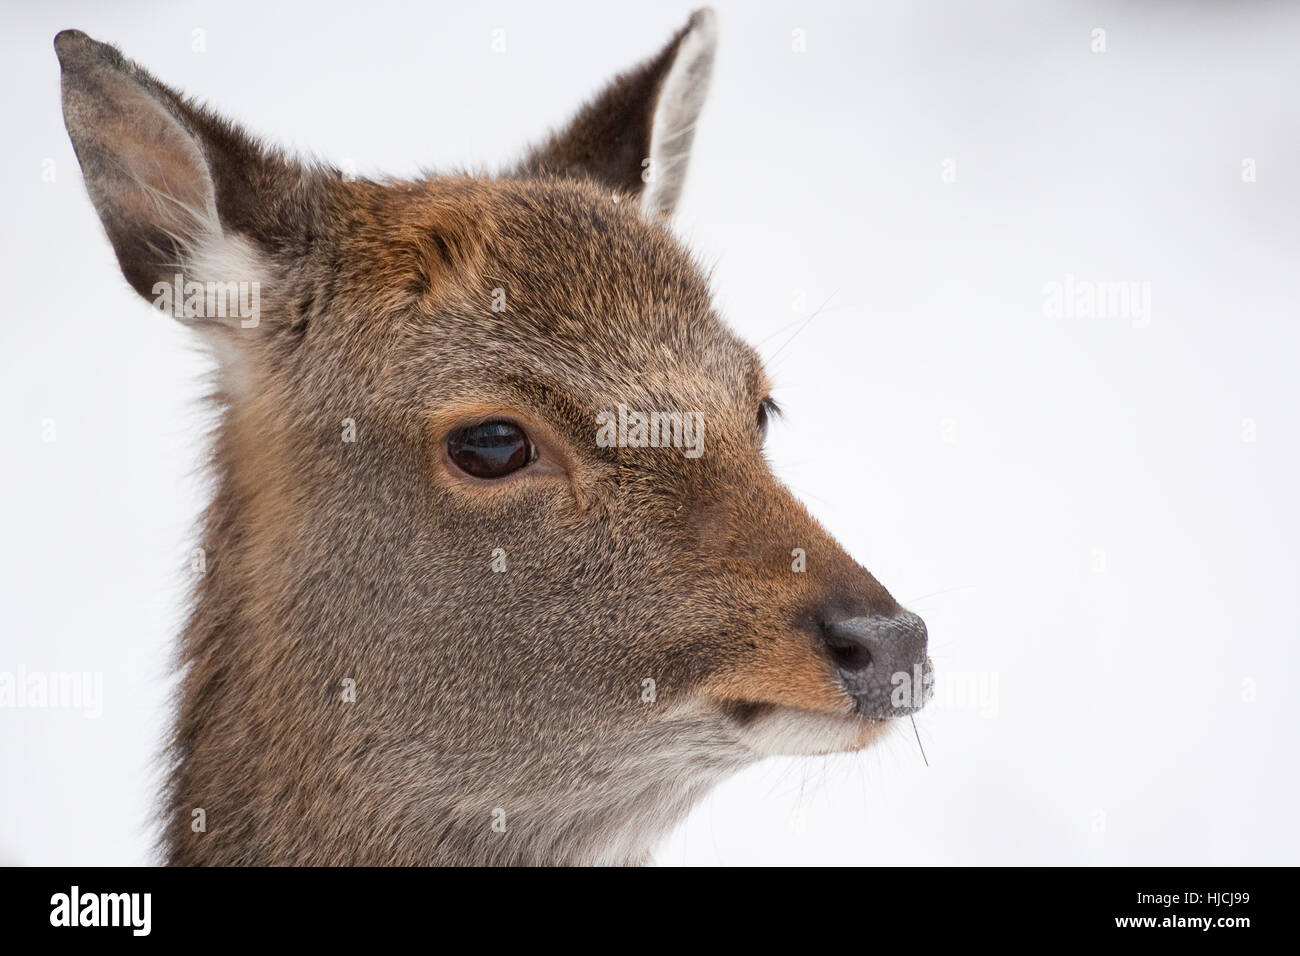 Sika, Sika-Hirsch, Sikahirsch, Sikawild, Sika-Wild, Jungtier, Cervus Nippon, Sika Hirsch Stockbild